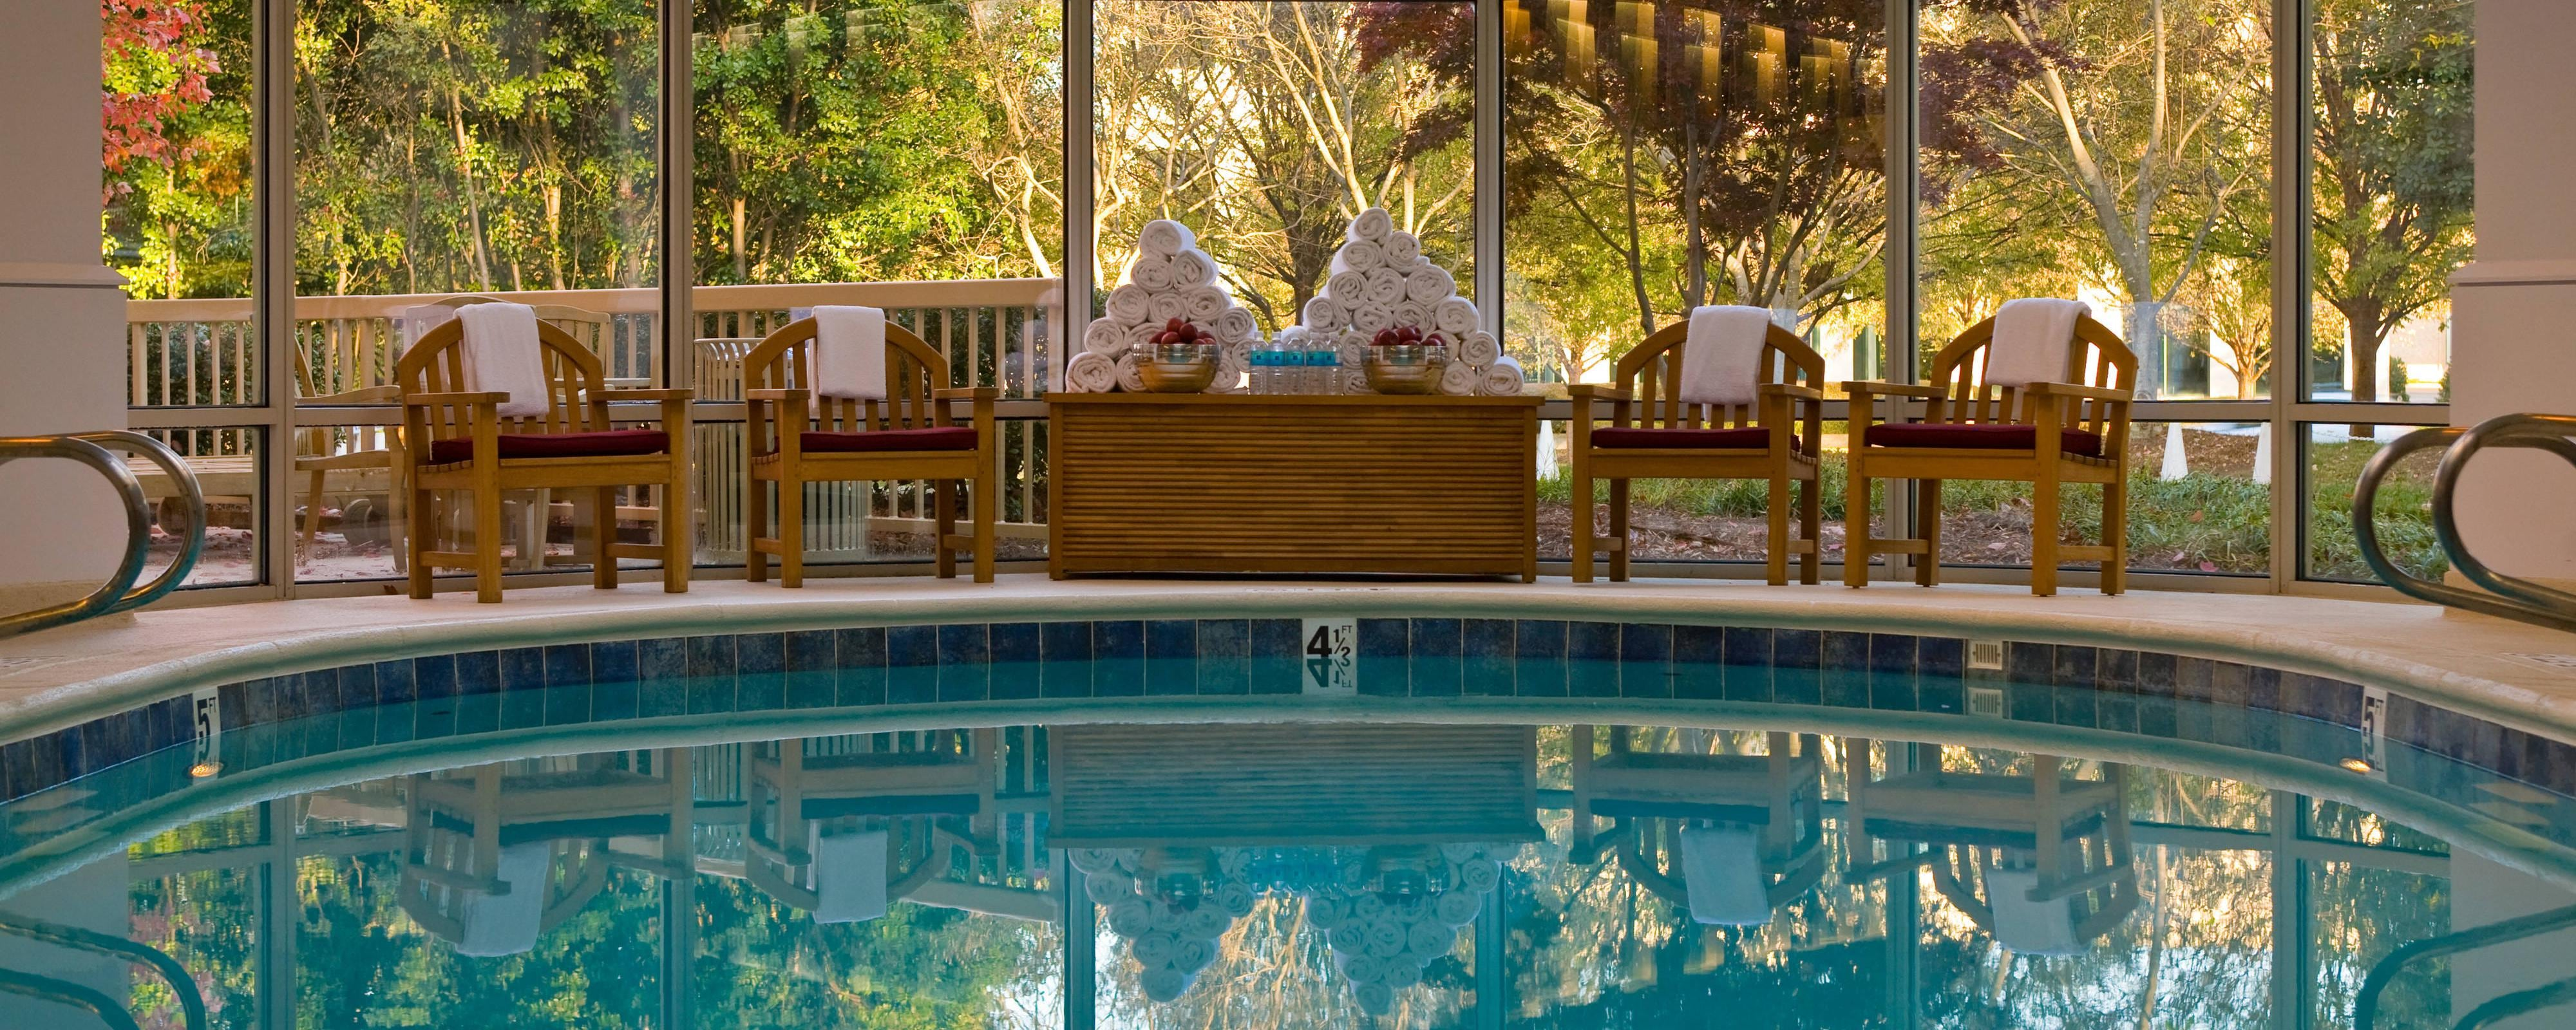 Charlotte hotel with indoor pool renaissance charlotte - Indoor swimming pools charlotte nc ...